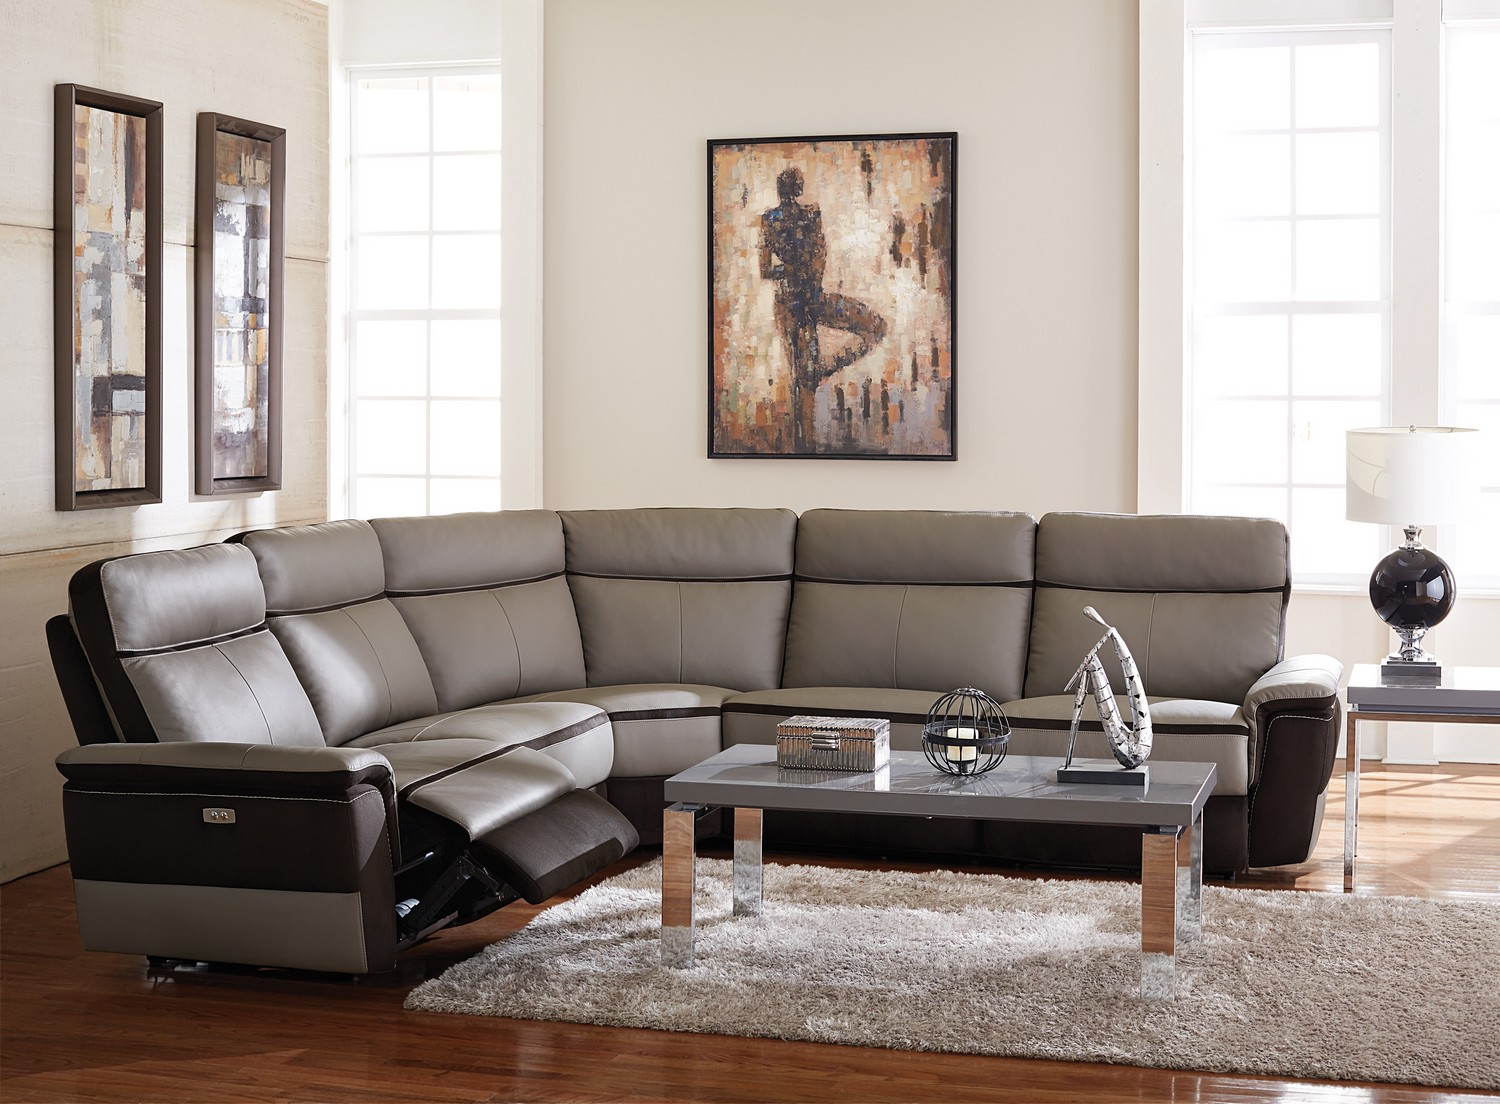 Homelegance Laertes Power Reclining Sectional Sofa Set - Top Grain Leather/Fabric - Taupe Grey